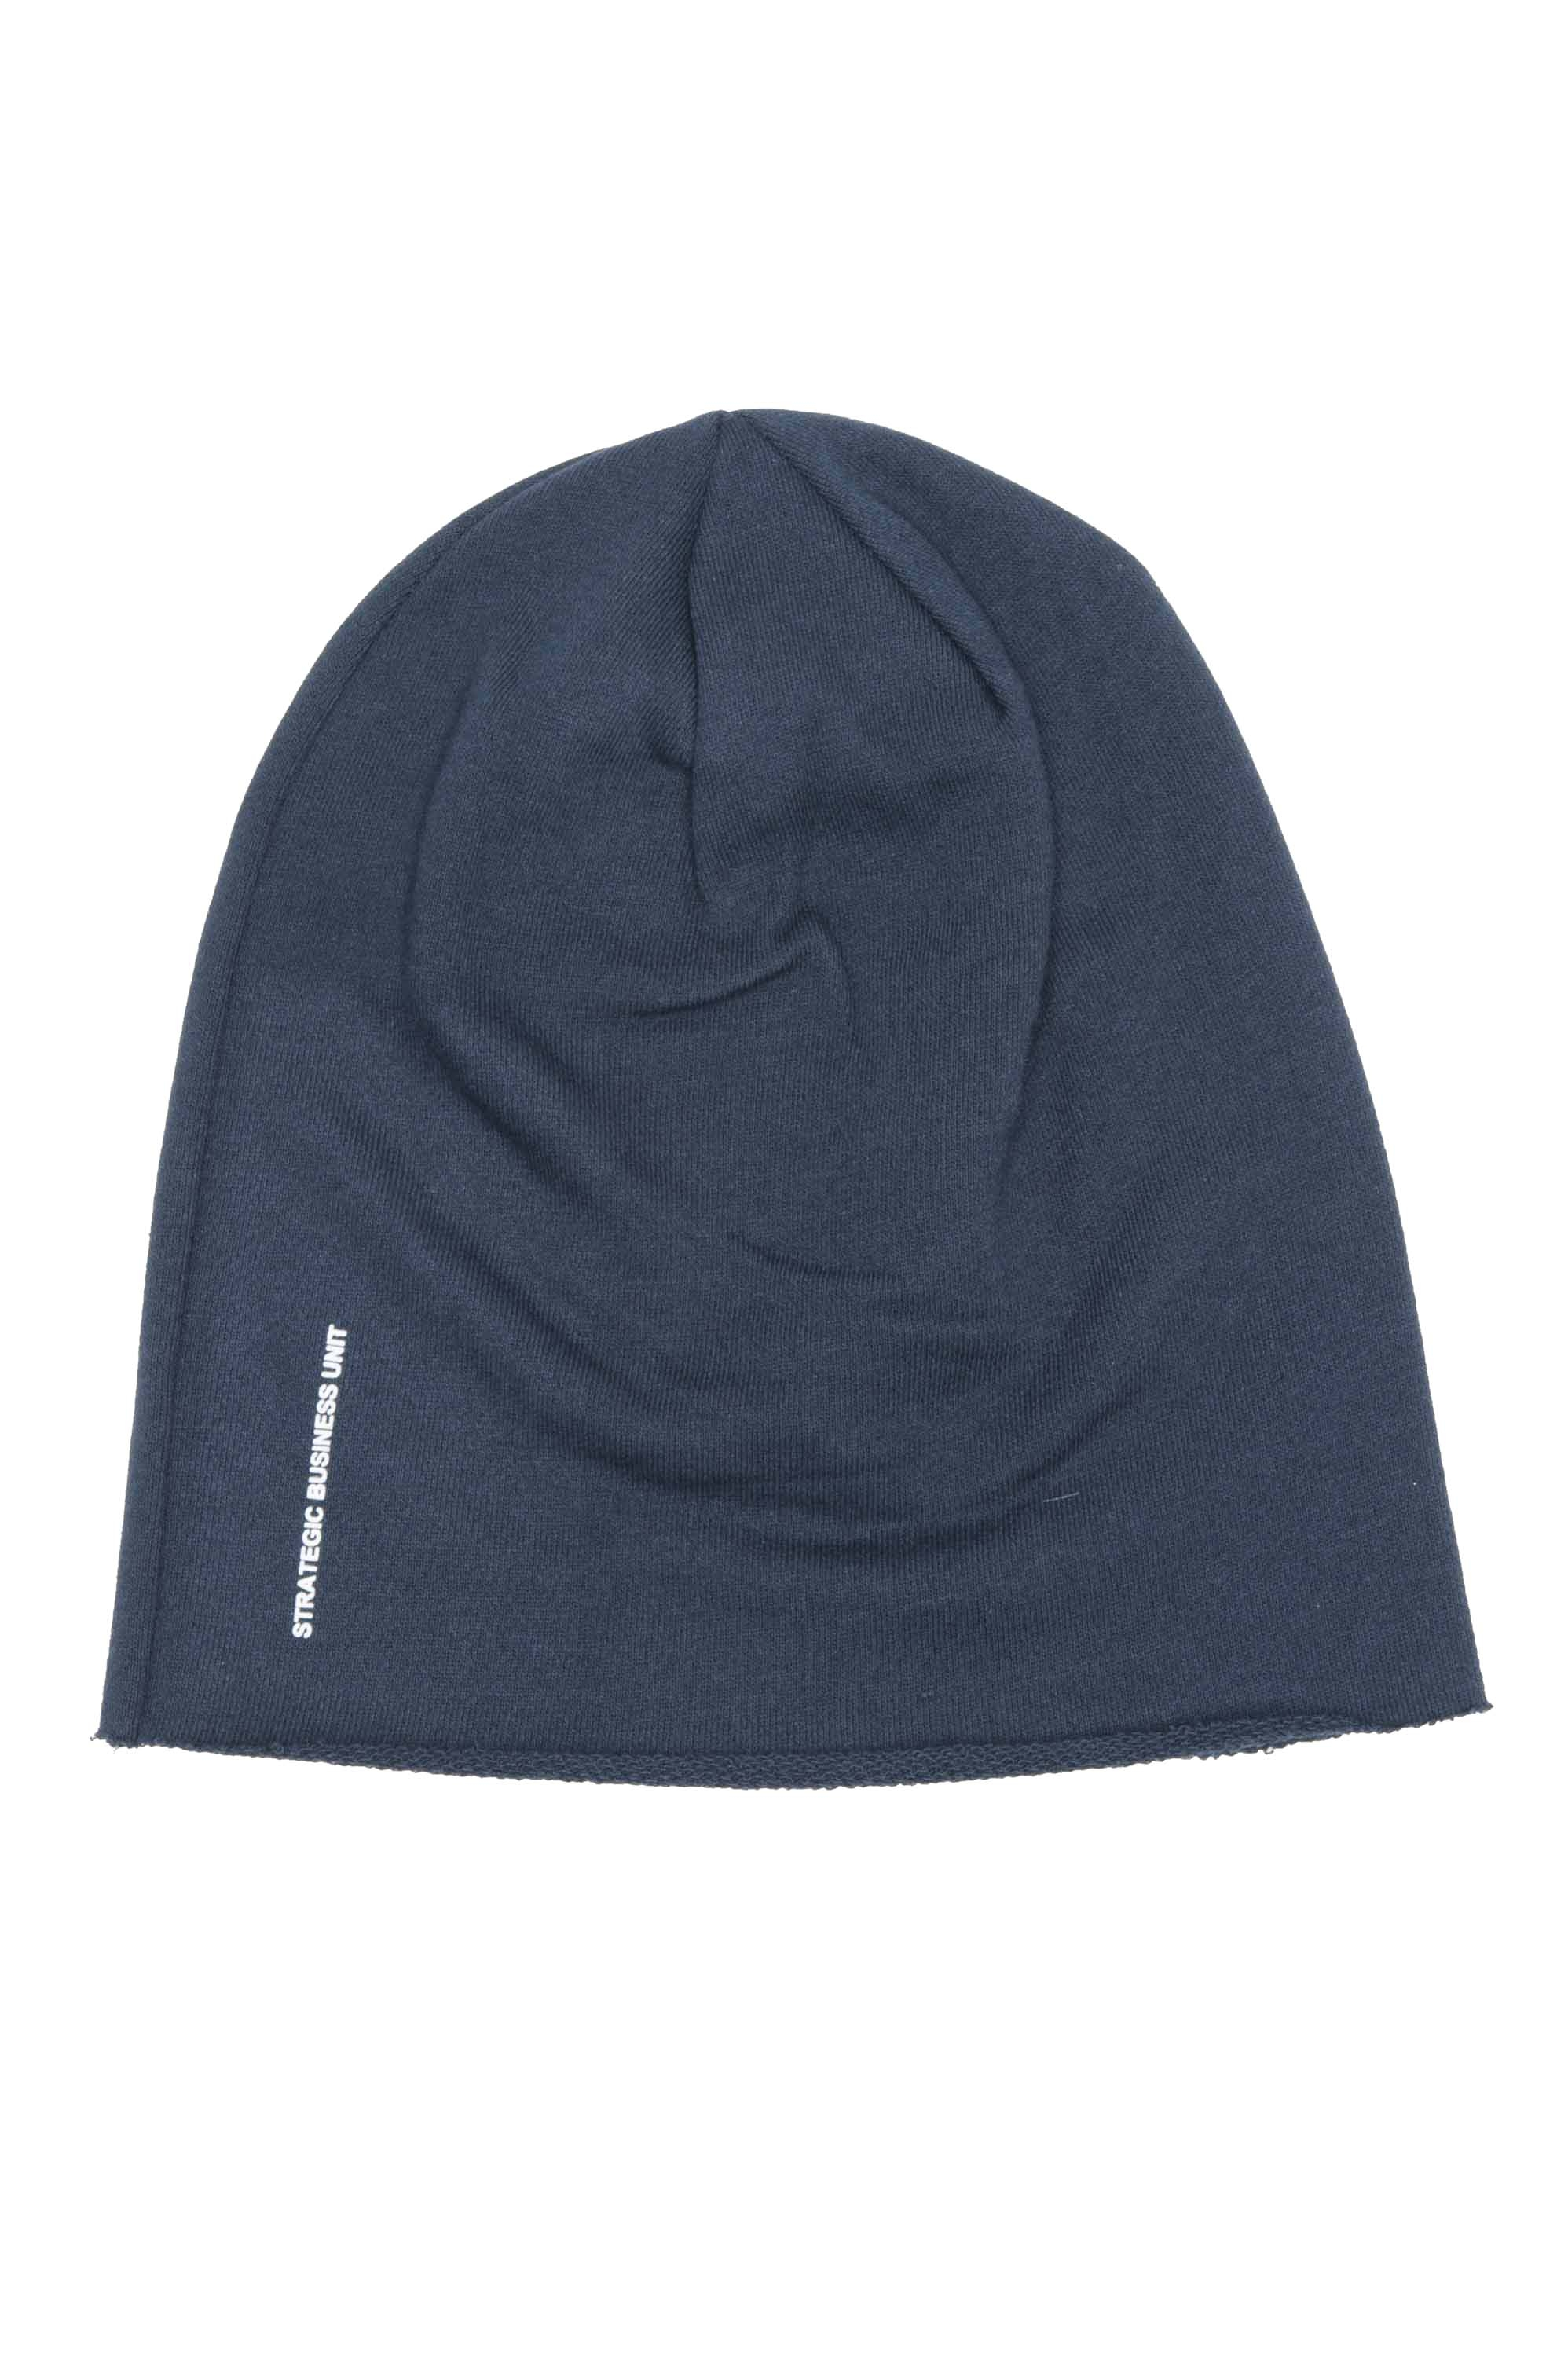 SBU 01190 Classic sharp cut blue jersey bonnet 01